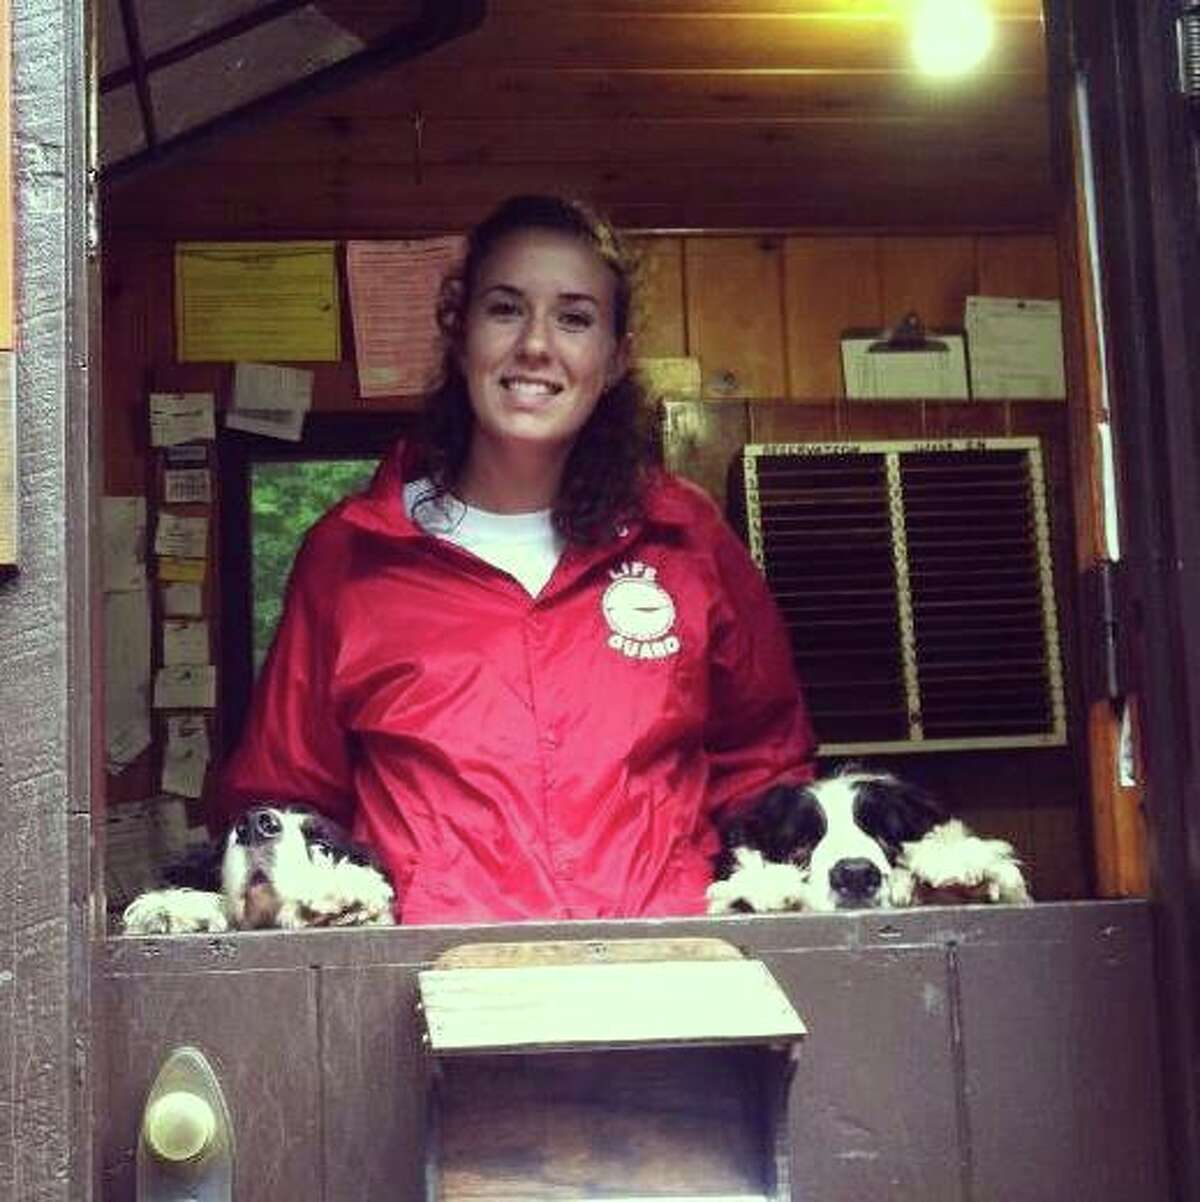 Amy Stafford was a lifeguard at the Golden Beach Campground on Raquette Lake during the summer. During a hike at the end of her stay in the Adirondacks, she fought off a bear with a knife while hiking.